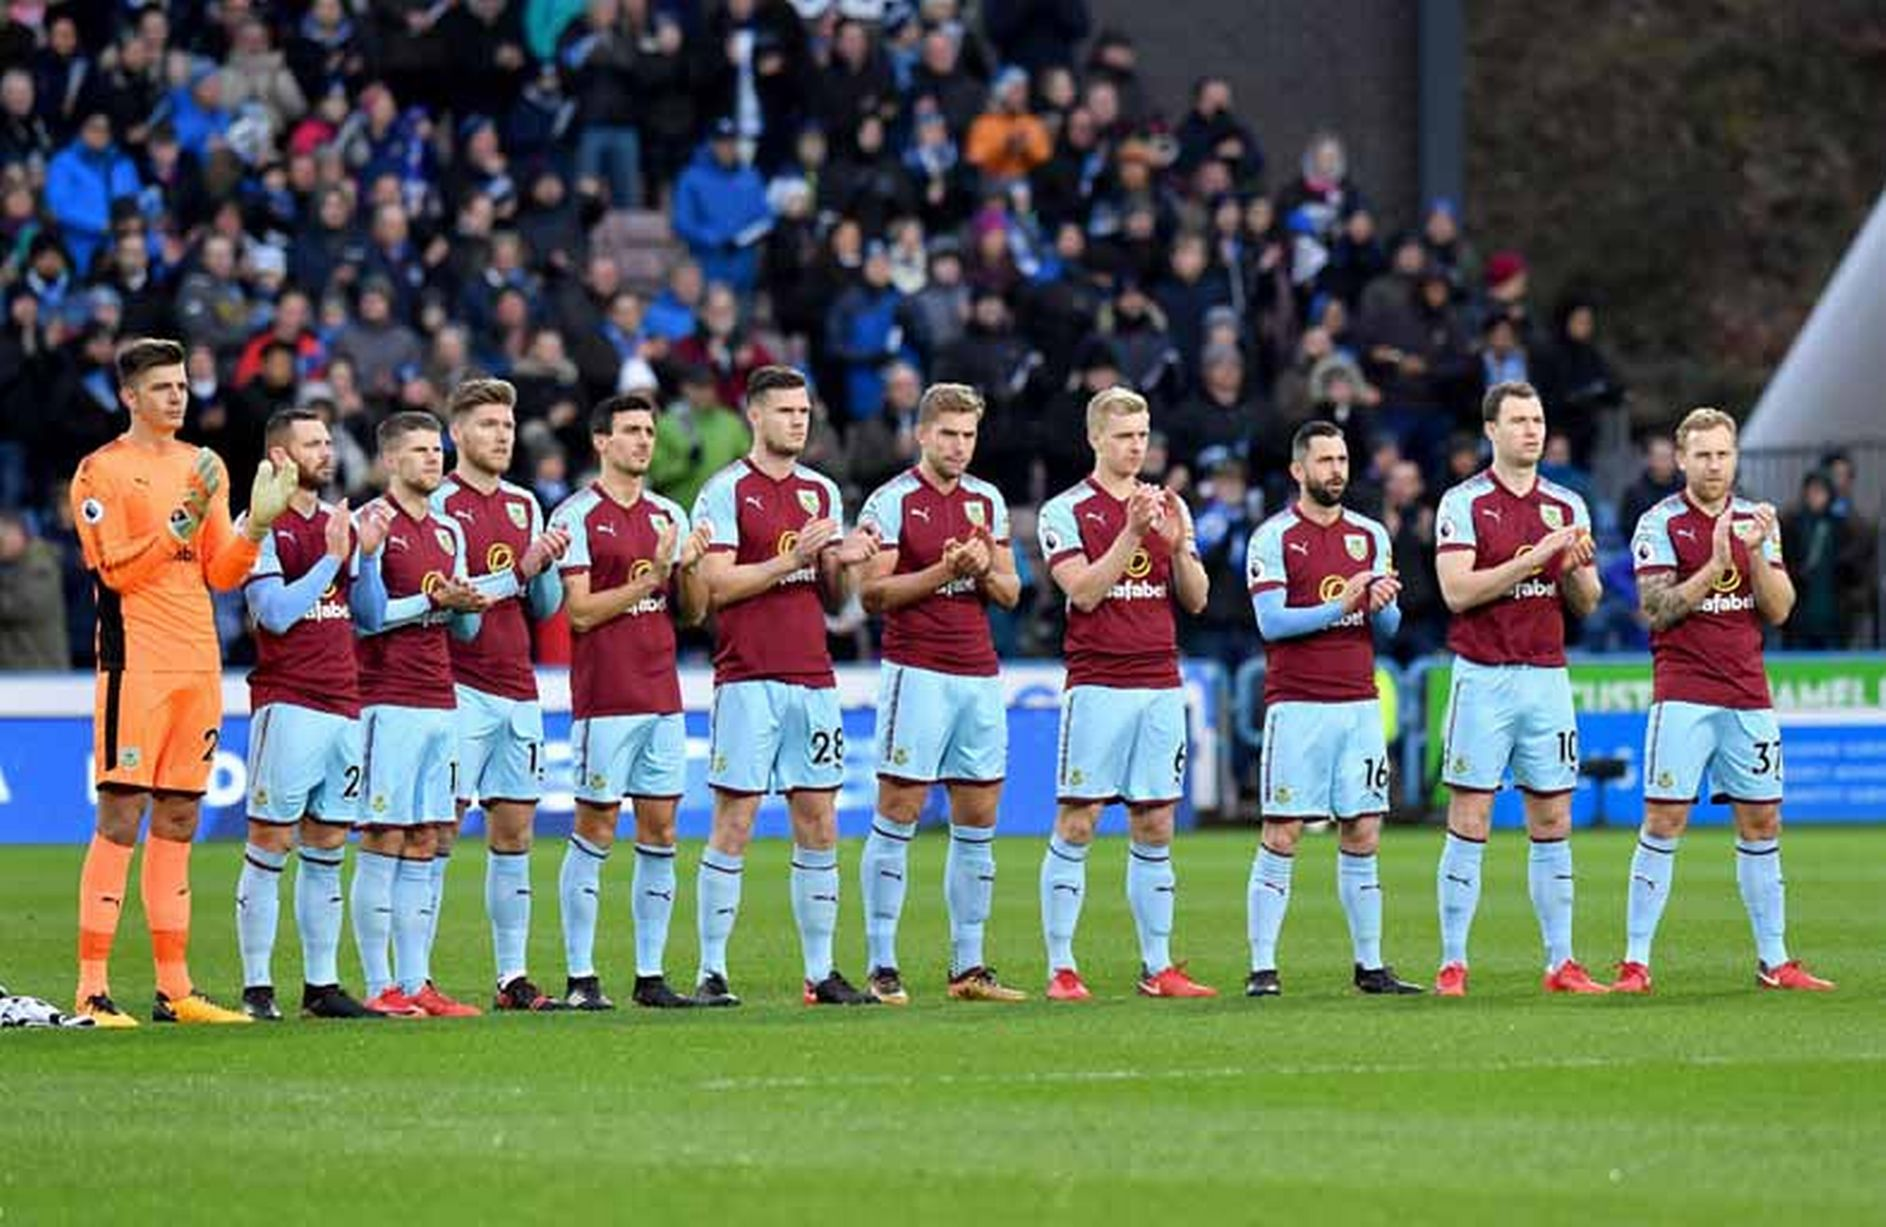 Burnley FC to Return to Europe after 51 Years ...